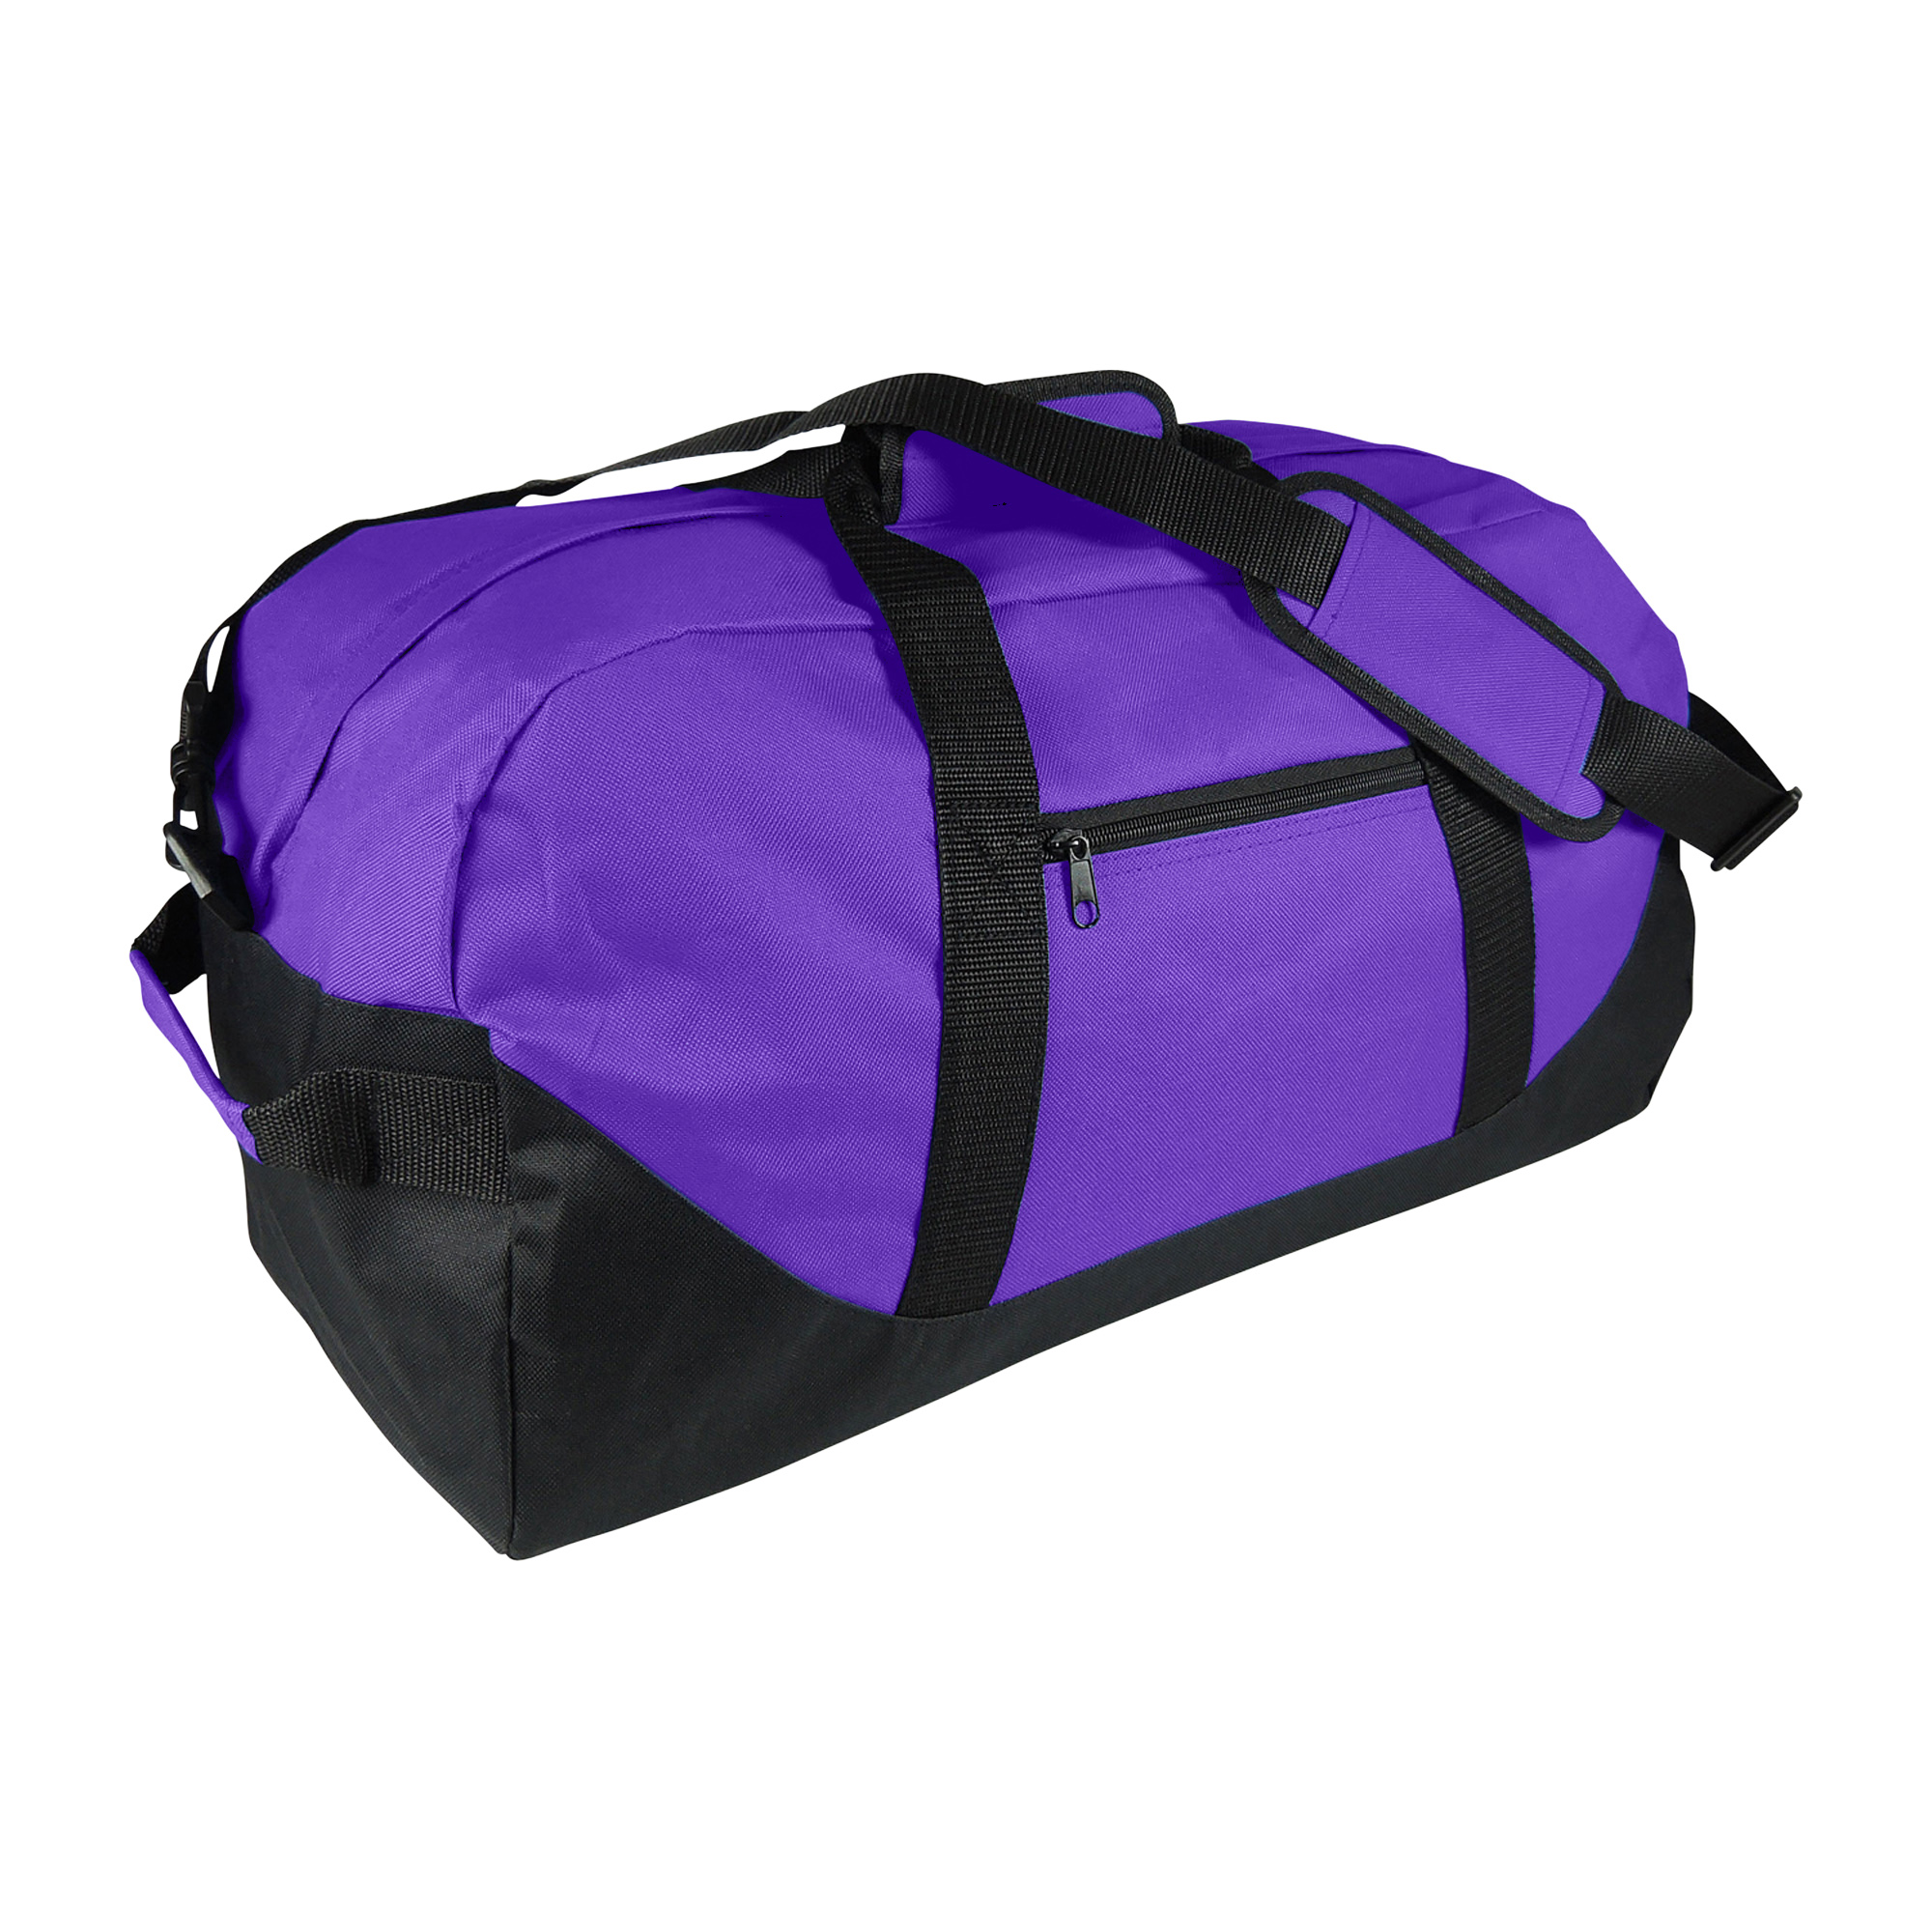 "DALIX 21"" Large Duffle Bag with Adjustable Strap in Black"